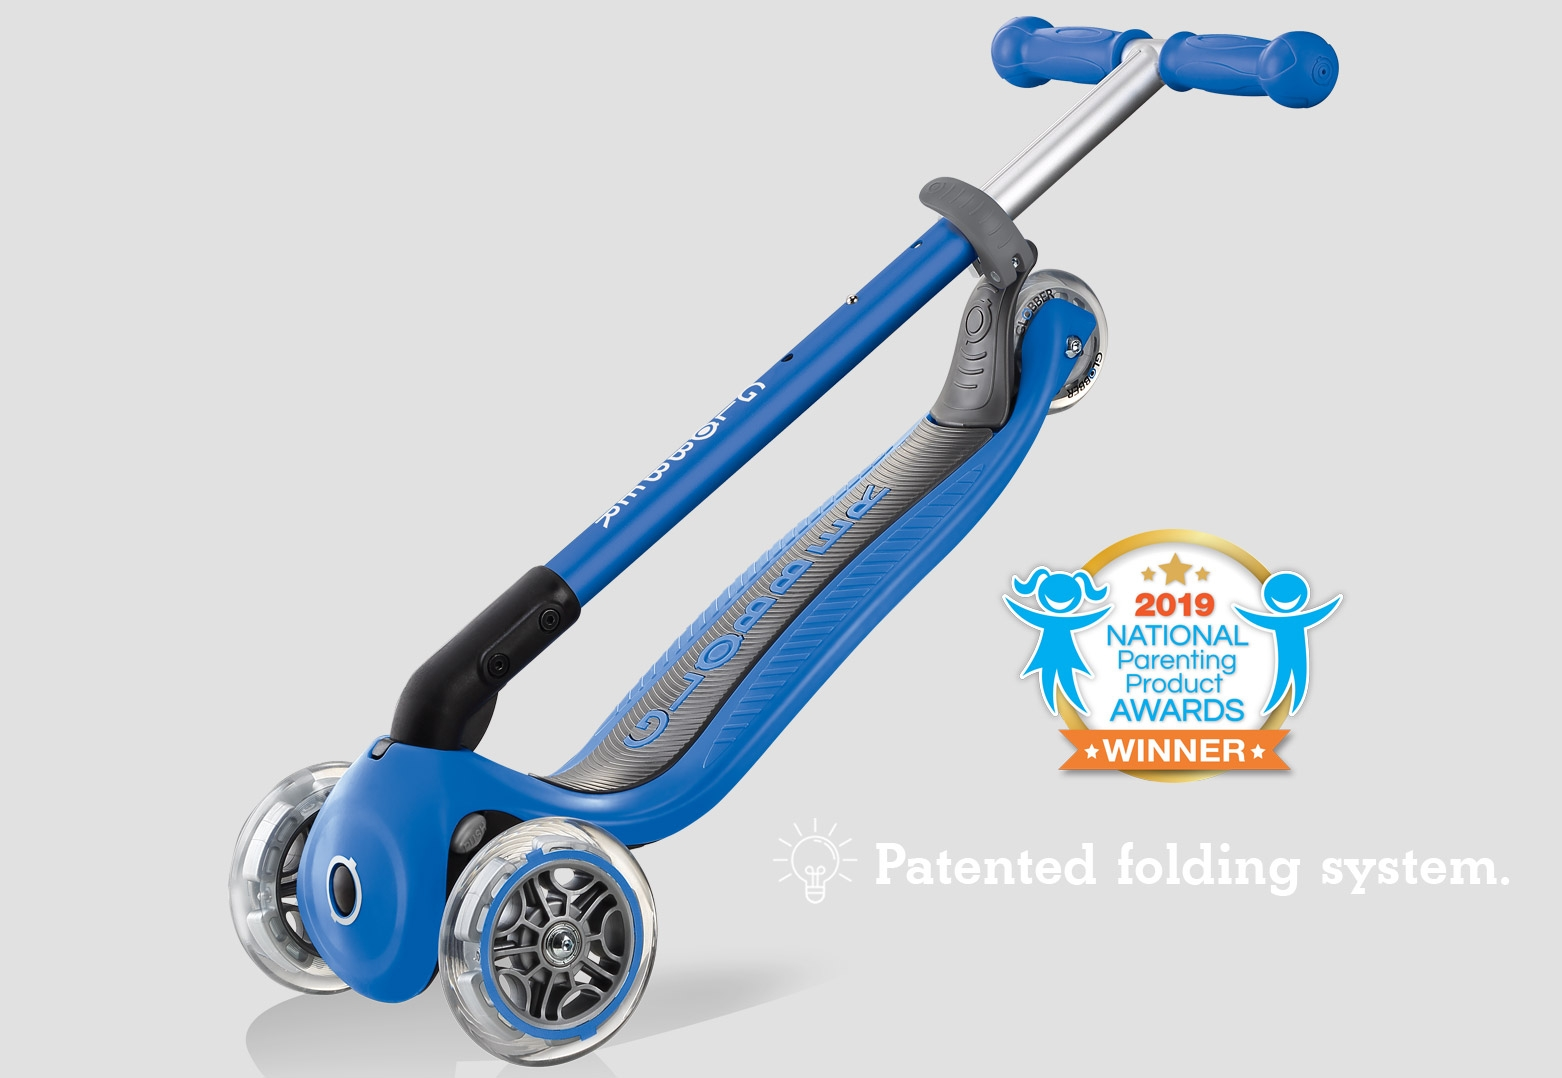 Folding 3 wheel scooter for kids